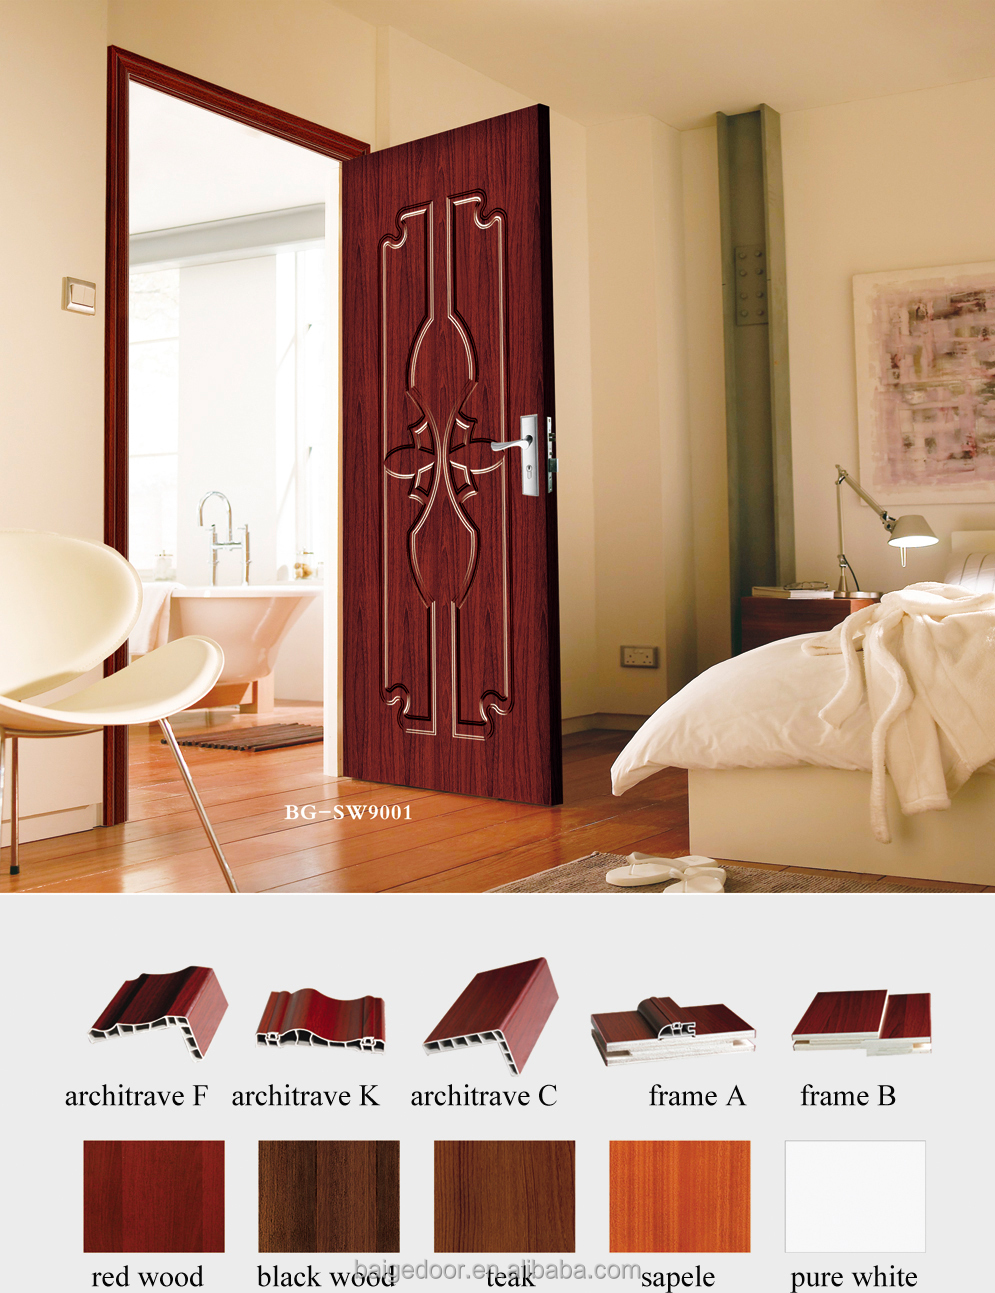 Alibaba manufacturer directory suppliers manufacturers bg sw608g decorative steel doorscherry wood interior doorssteel wooden interior door eventelaan Gallery